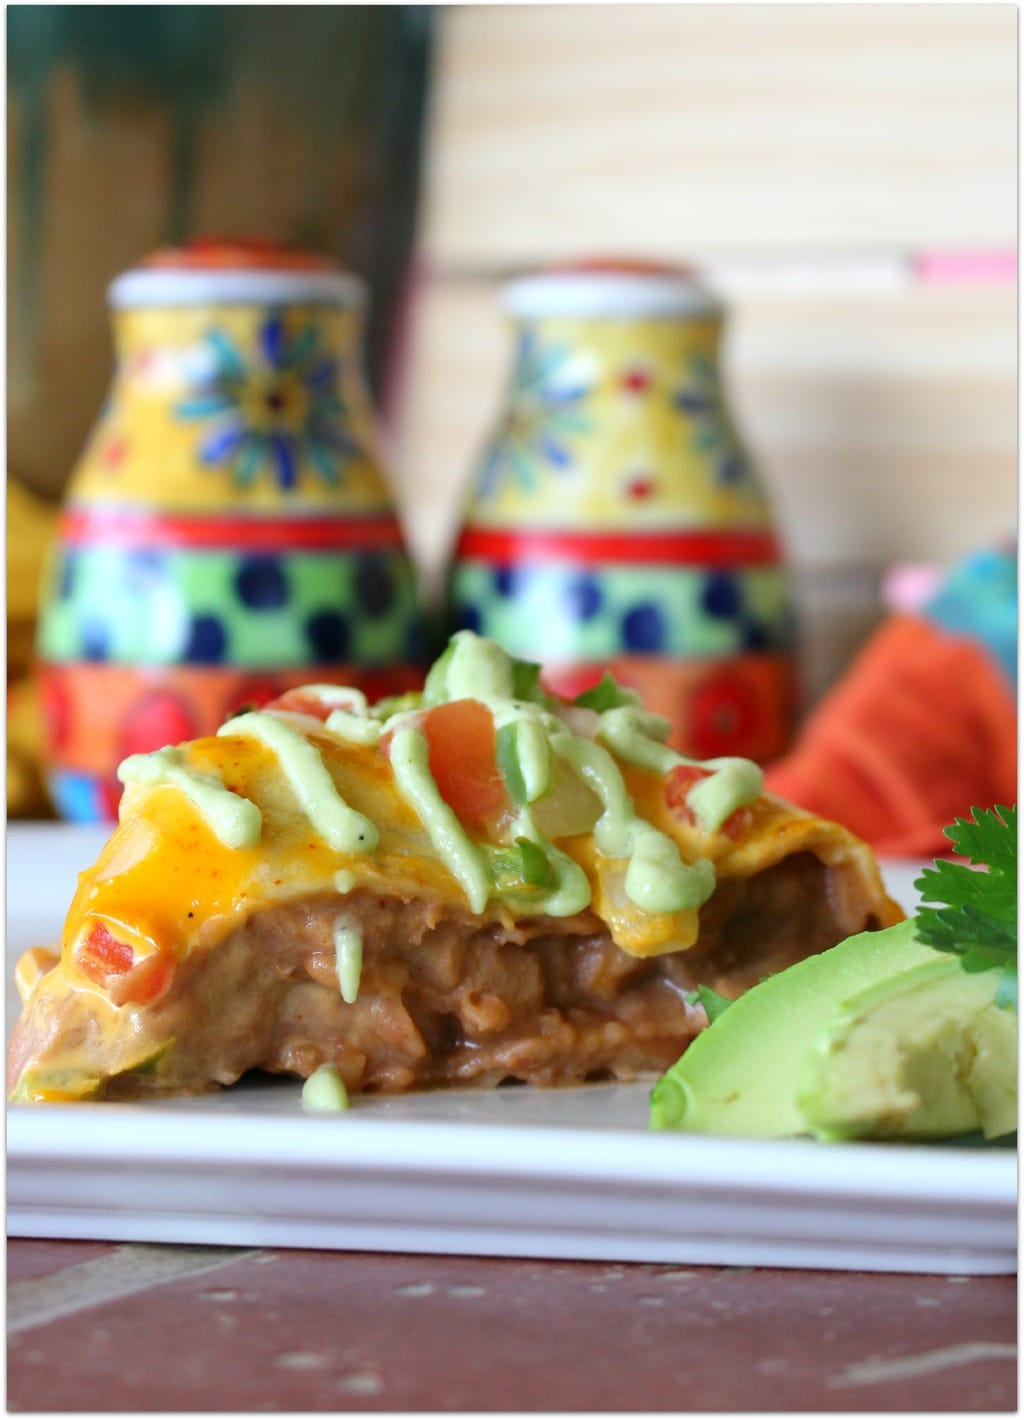 This easy taco bake will become one of your favorite easy recipes! We love Mexican food, and this recipe will be on my regular list for easy meals.